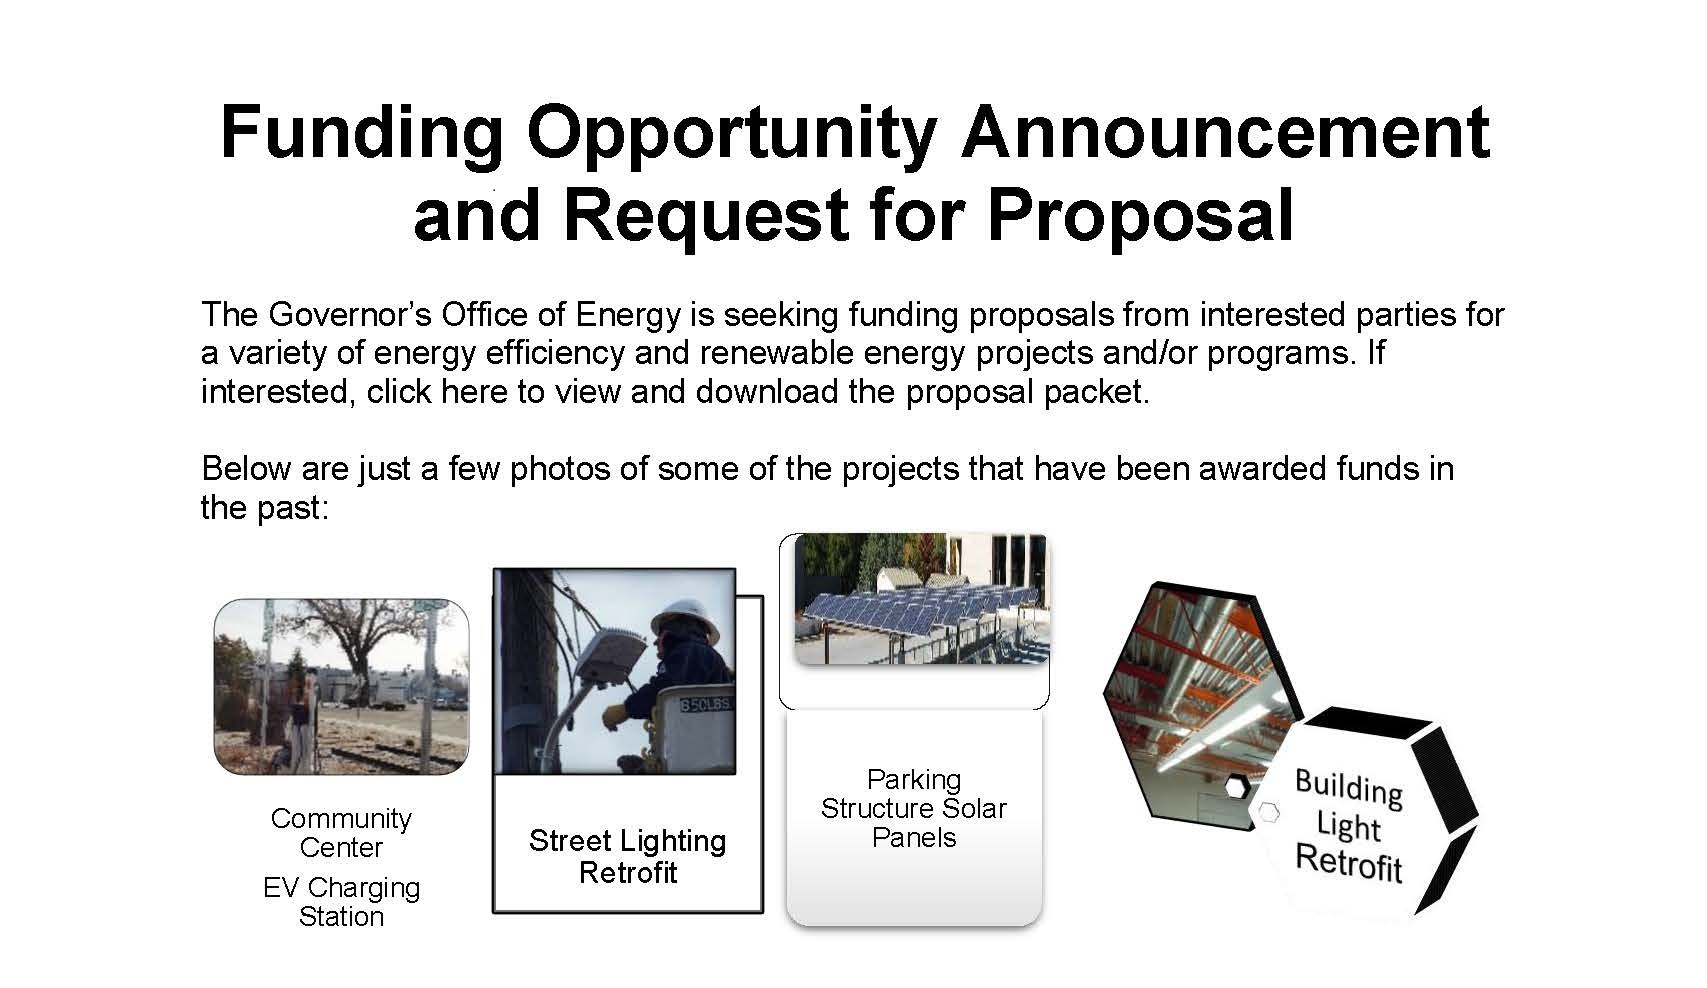 Funding Opportunity Announcement and RFP